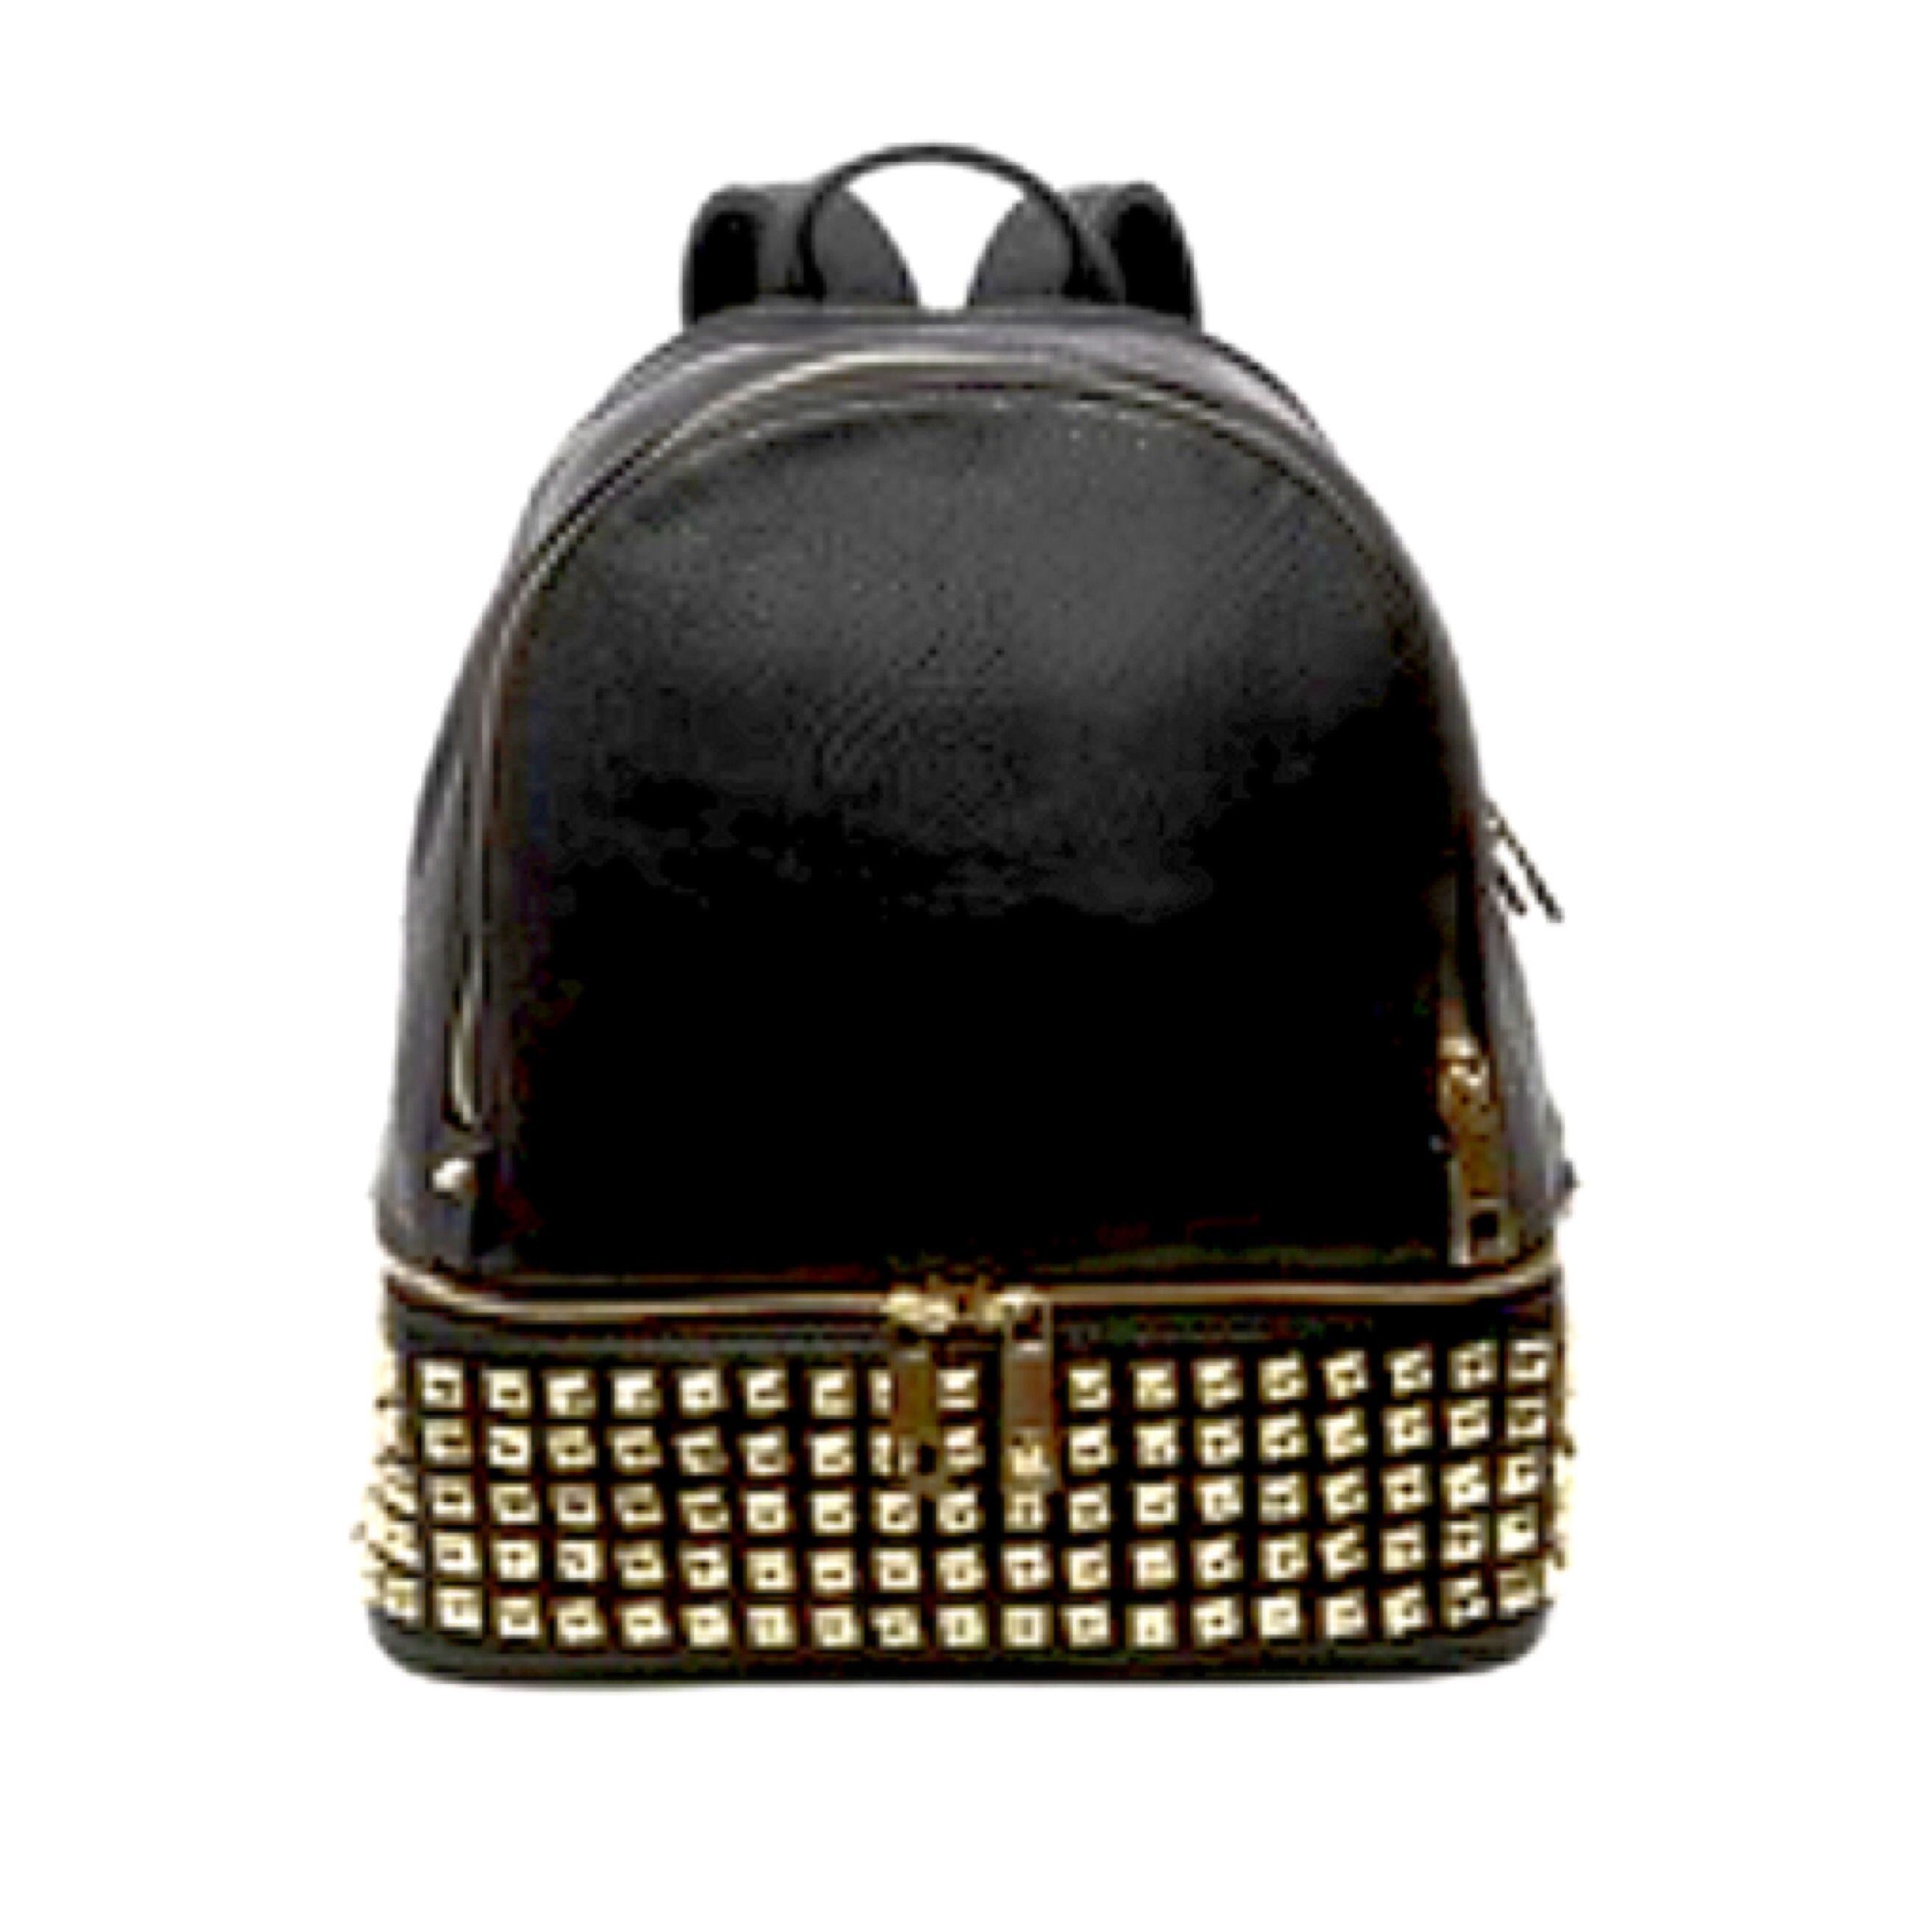 bb5da758c673 Knockoff Michael Kors Rhea Backpack- Black Studded- Groupon.com $14.97